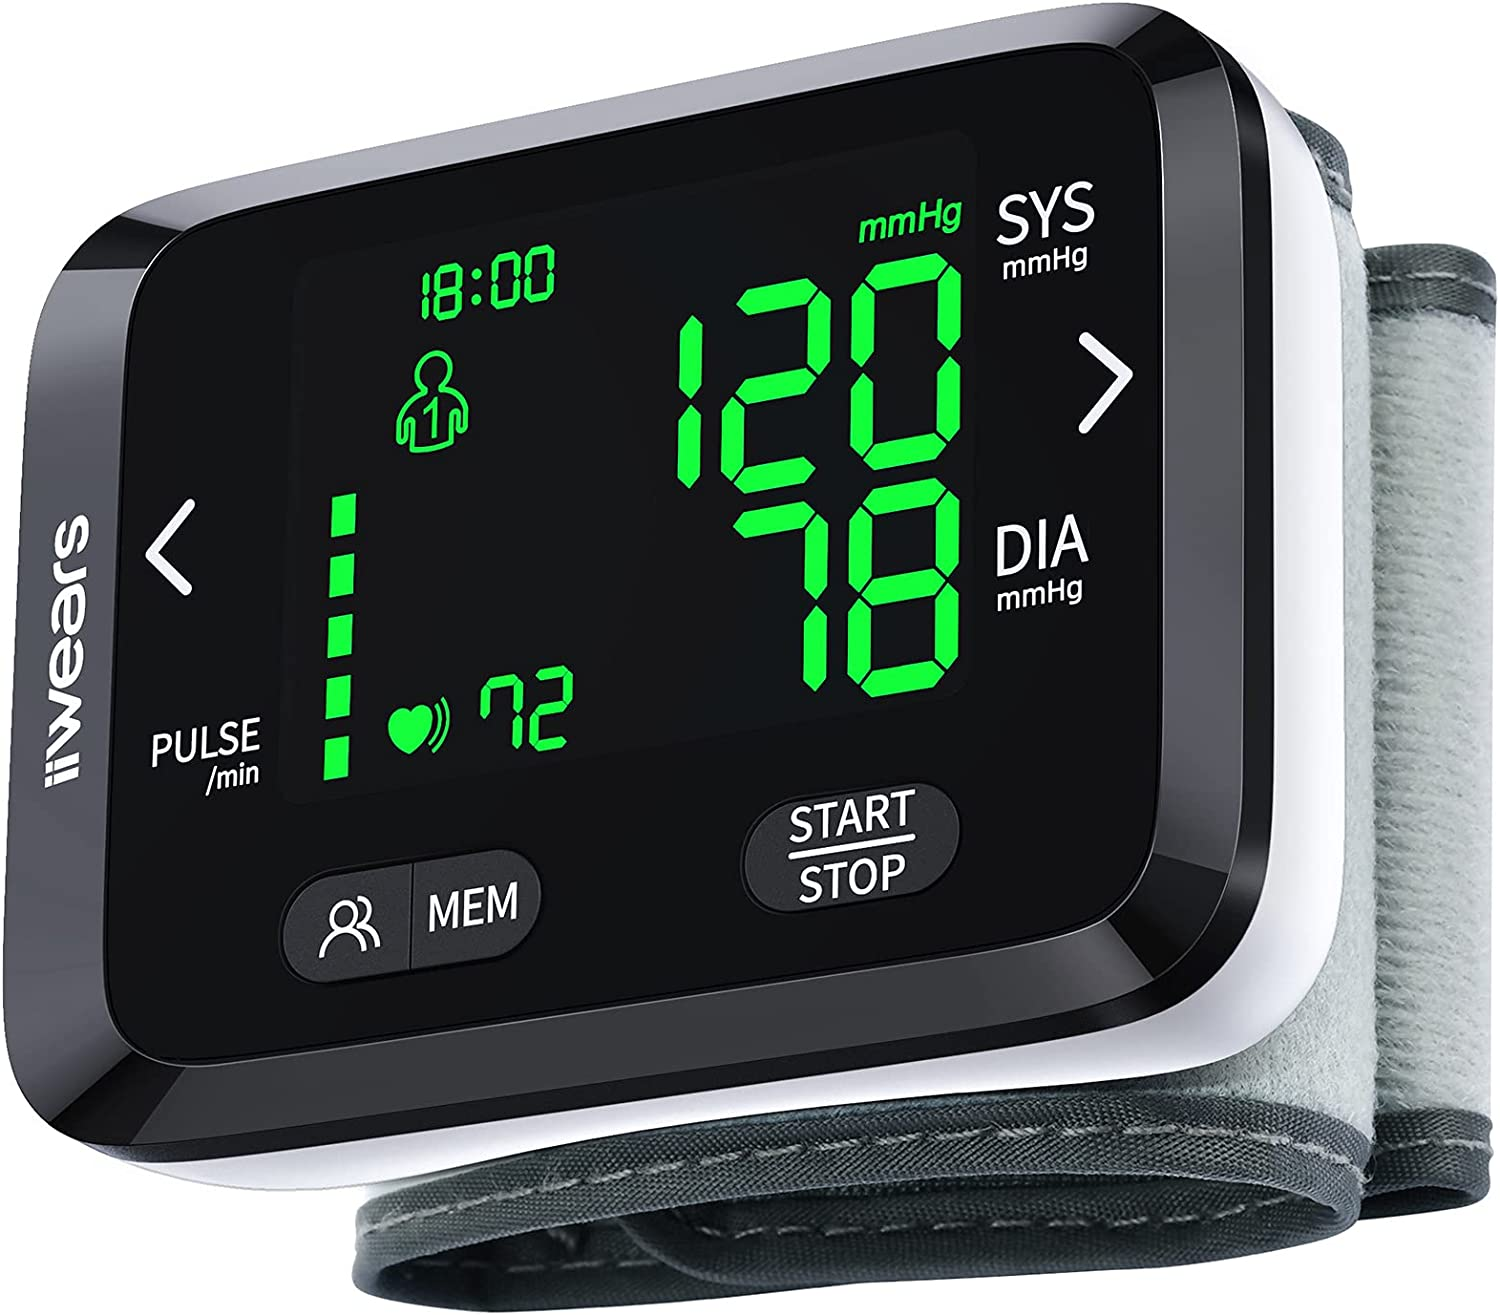 Blood Pressure Monitor iiwears Automatic Digital Wrist Blood Pressure Cuff with 2x99 Memory 3 Color Backlit LCD Display BP Monitor Blood Pressure Cuffs for Home Use Included Batteries